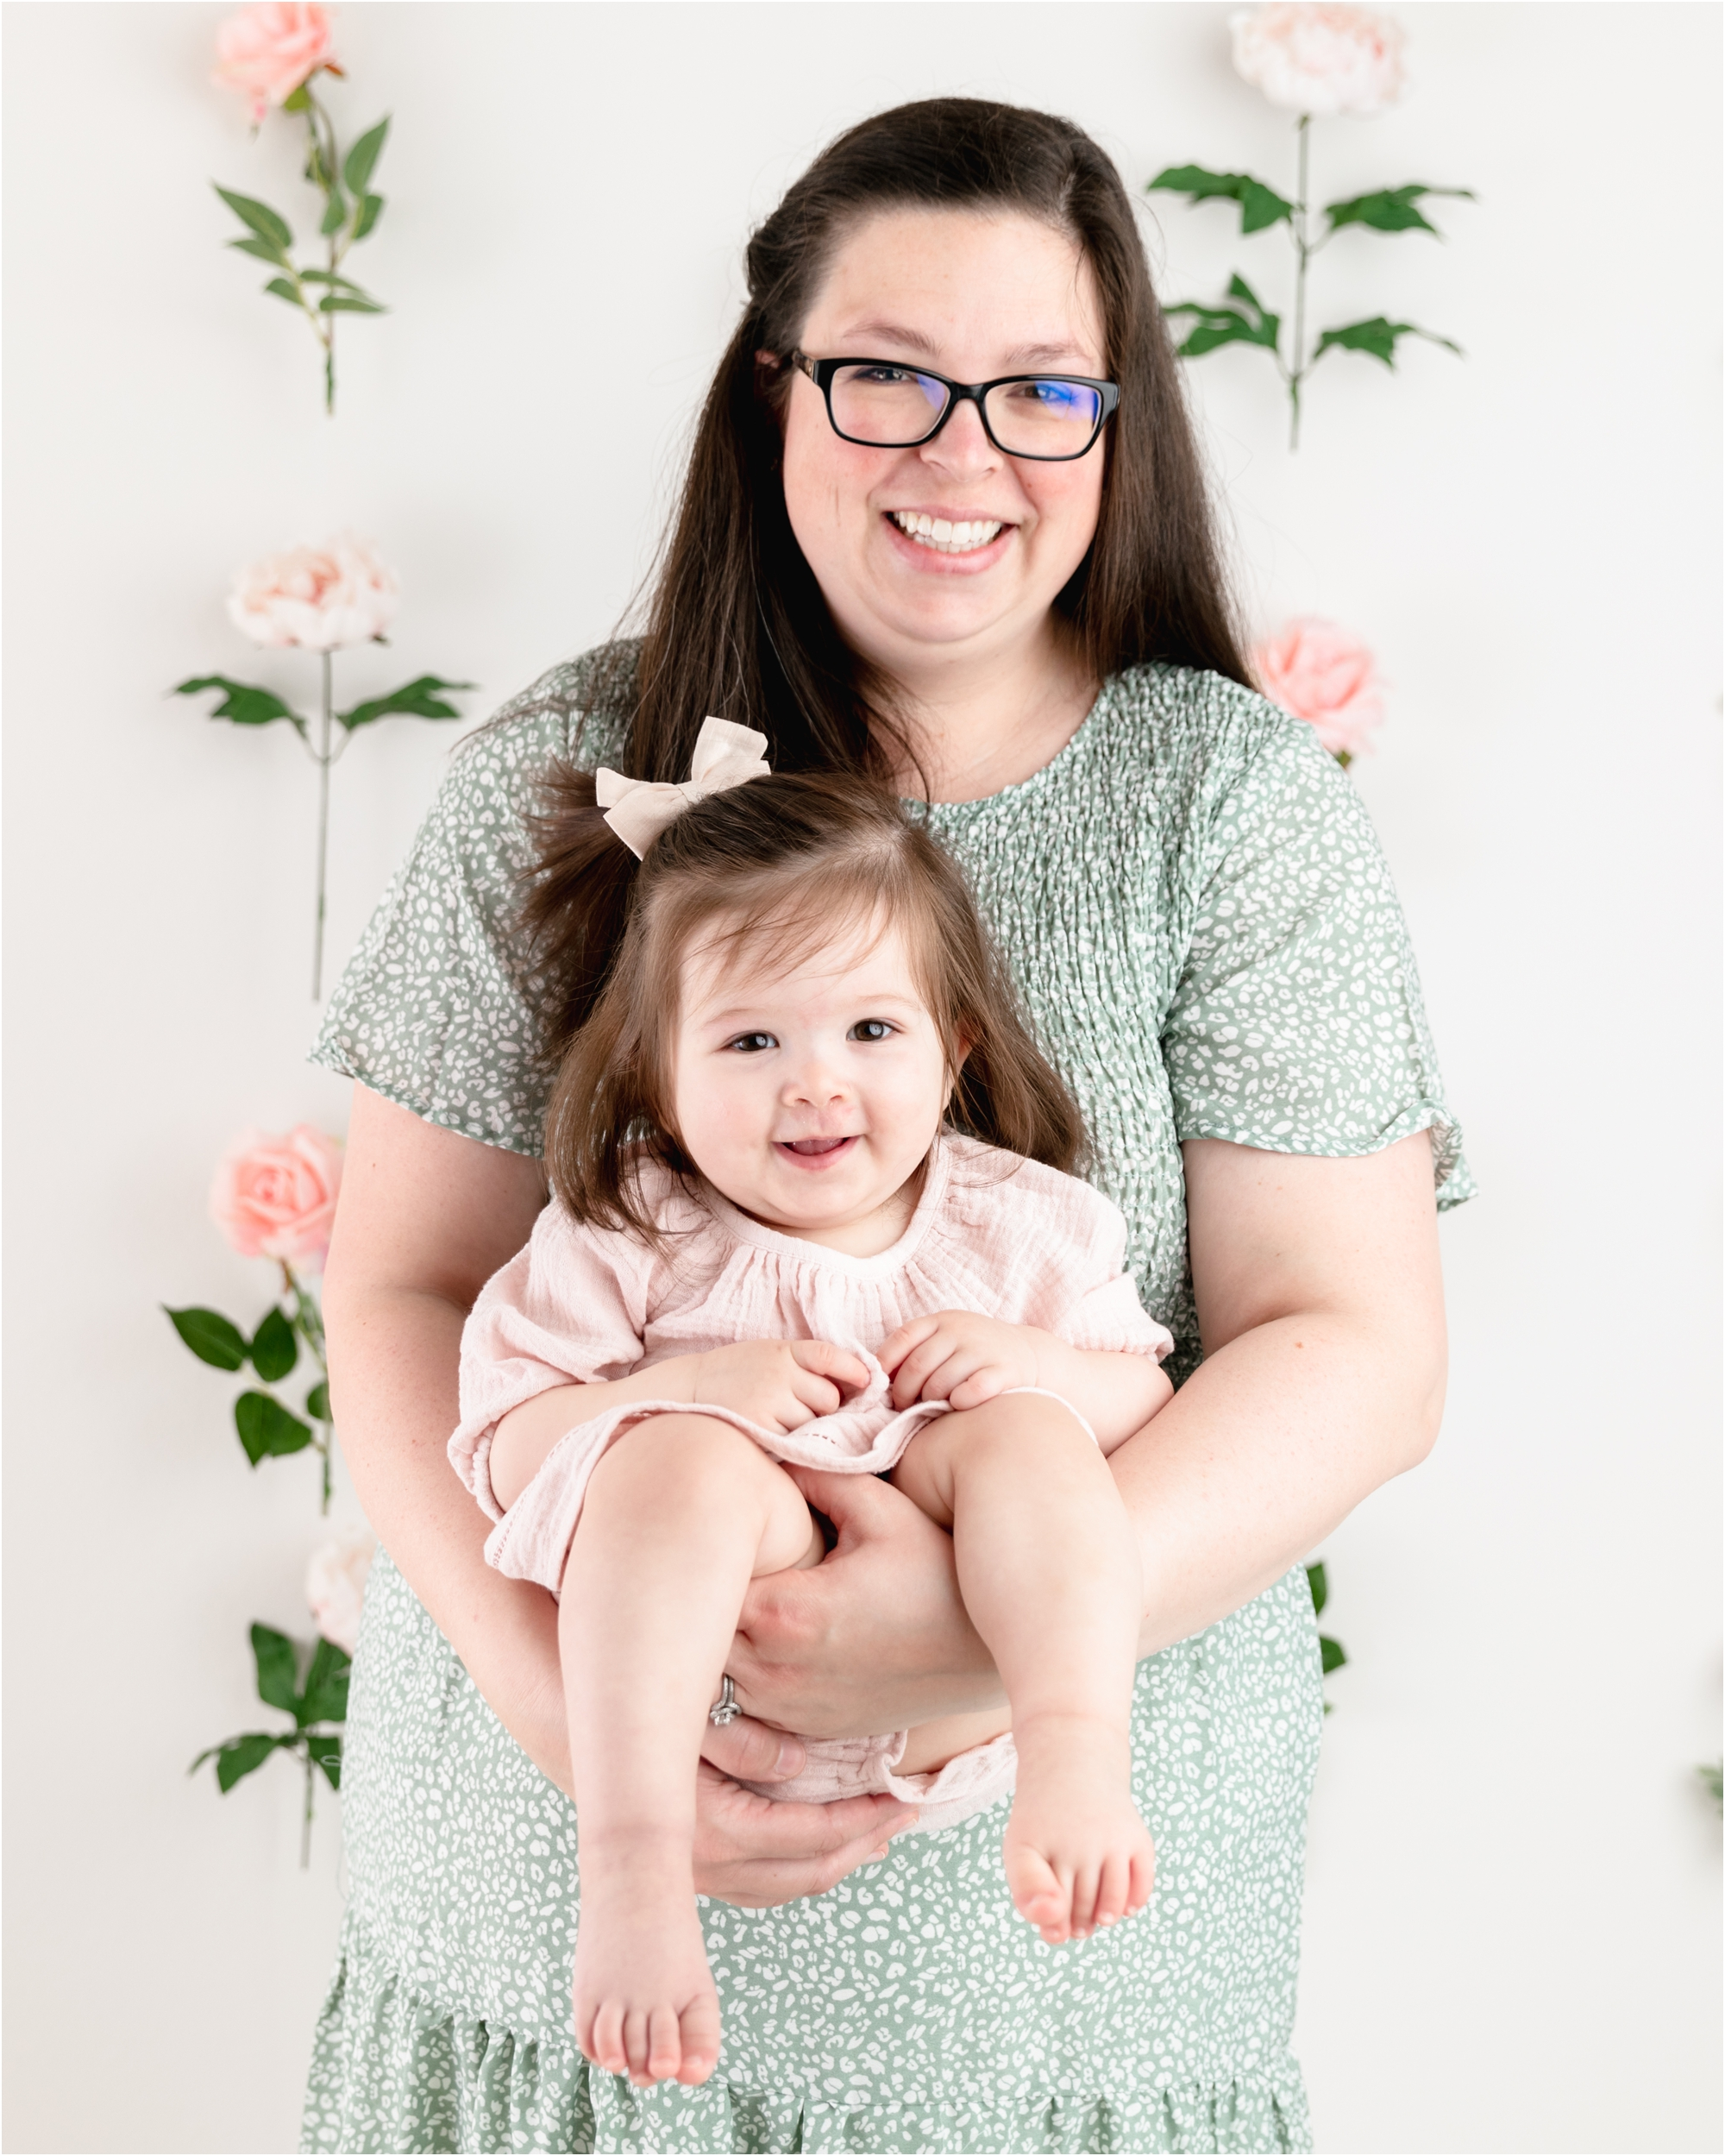 Mom and daughter wearing dresses from the client wardrobe during milestone session in studio. Photo by Houston TX photographer, Lifetime of Clicks Photography.